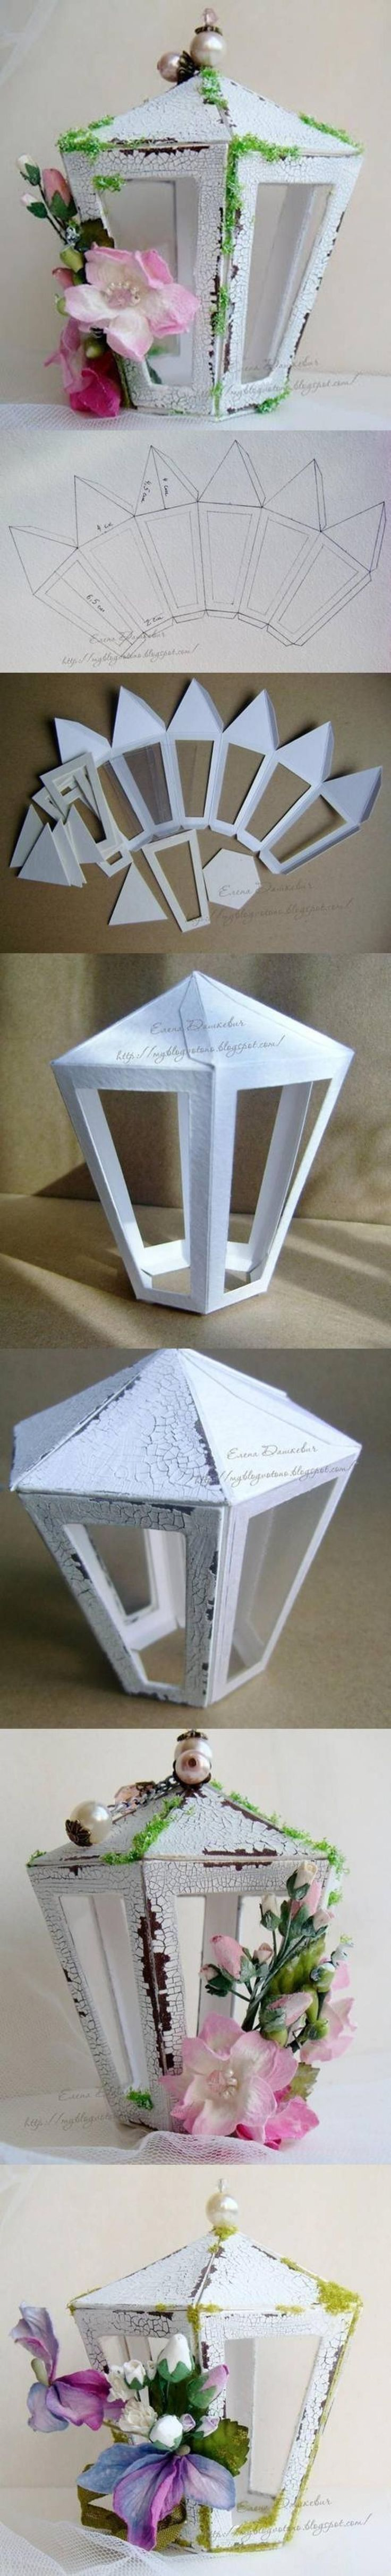 Tinker a paper lantern! Free pattern. - Crafts - Crafts and Stuff